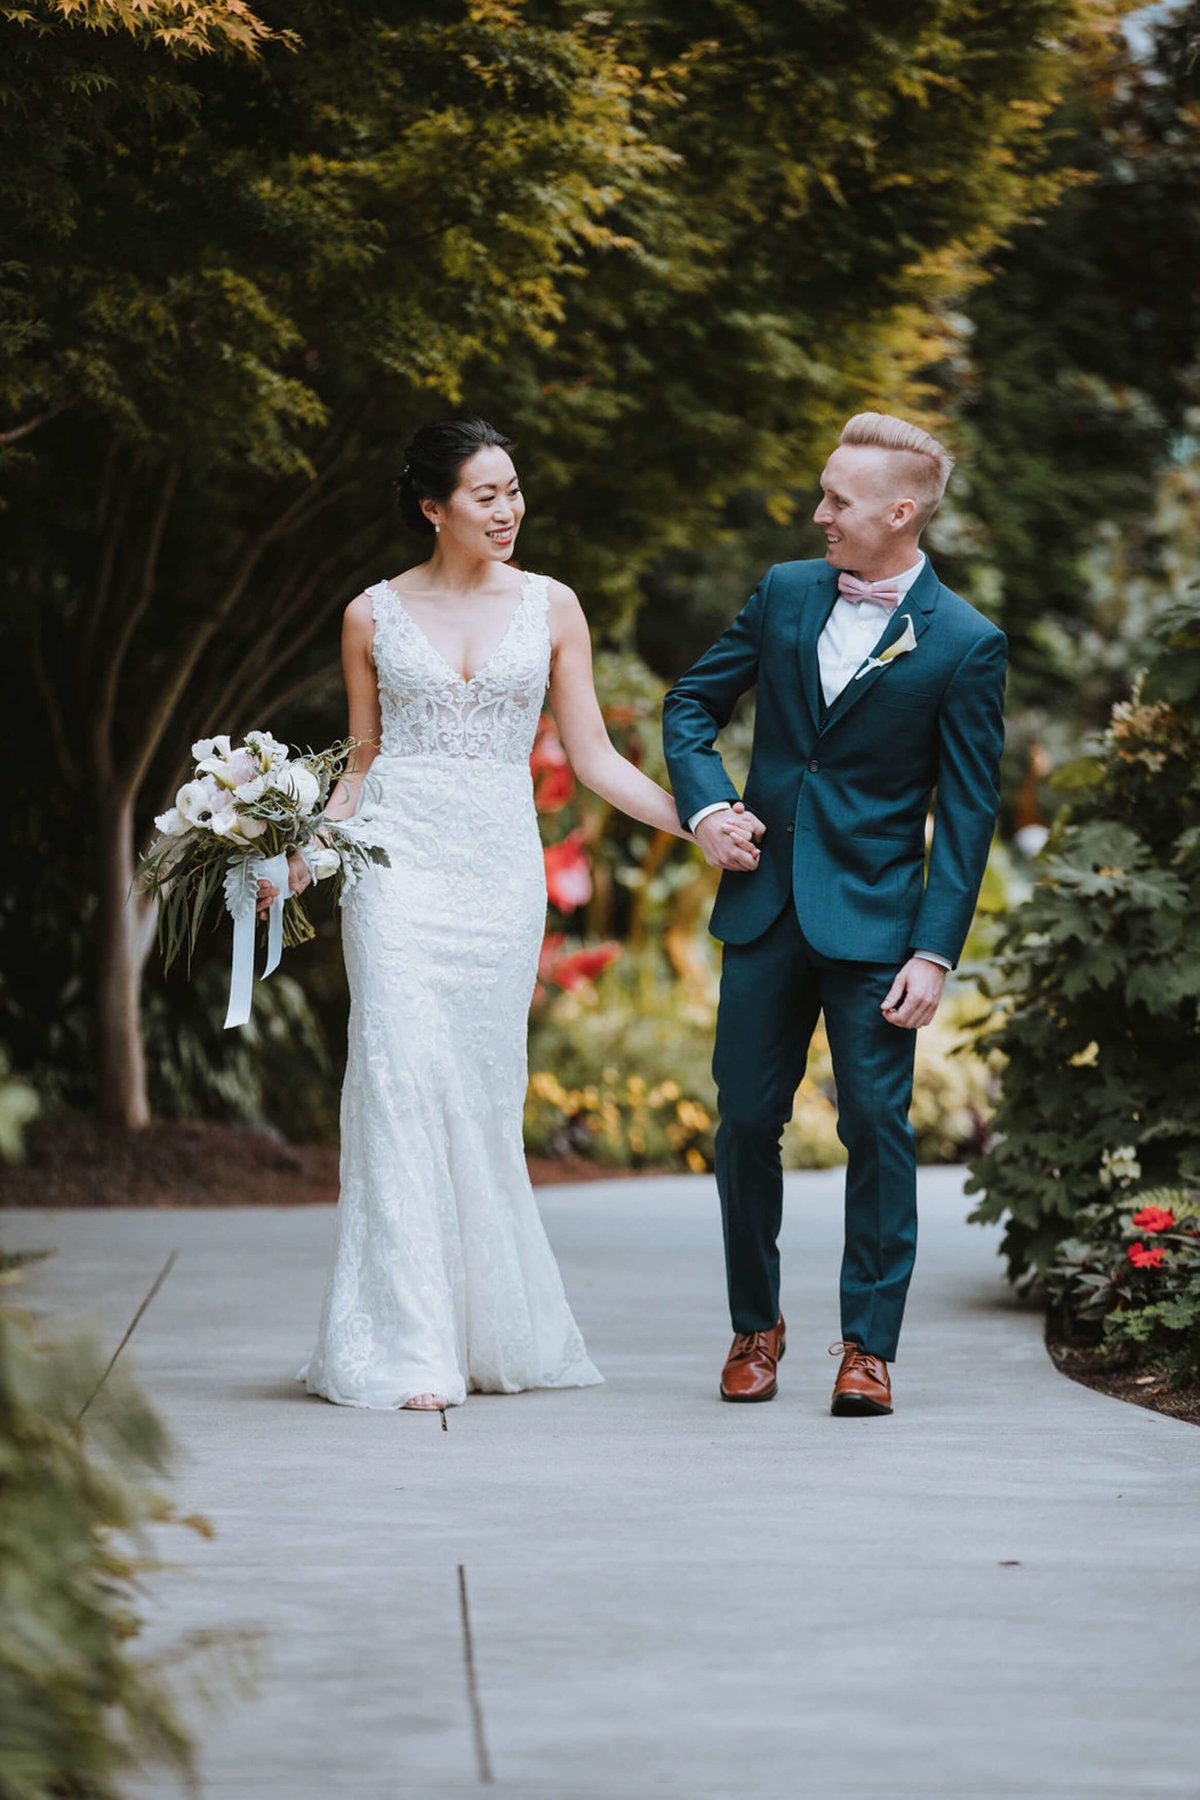 chihuly-garden-and-glass-wedding-sharel-eric-by-Adina-Preston-Photography-2019-201